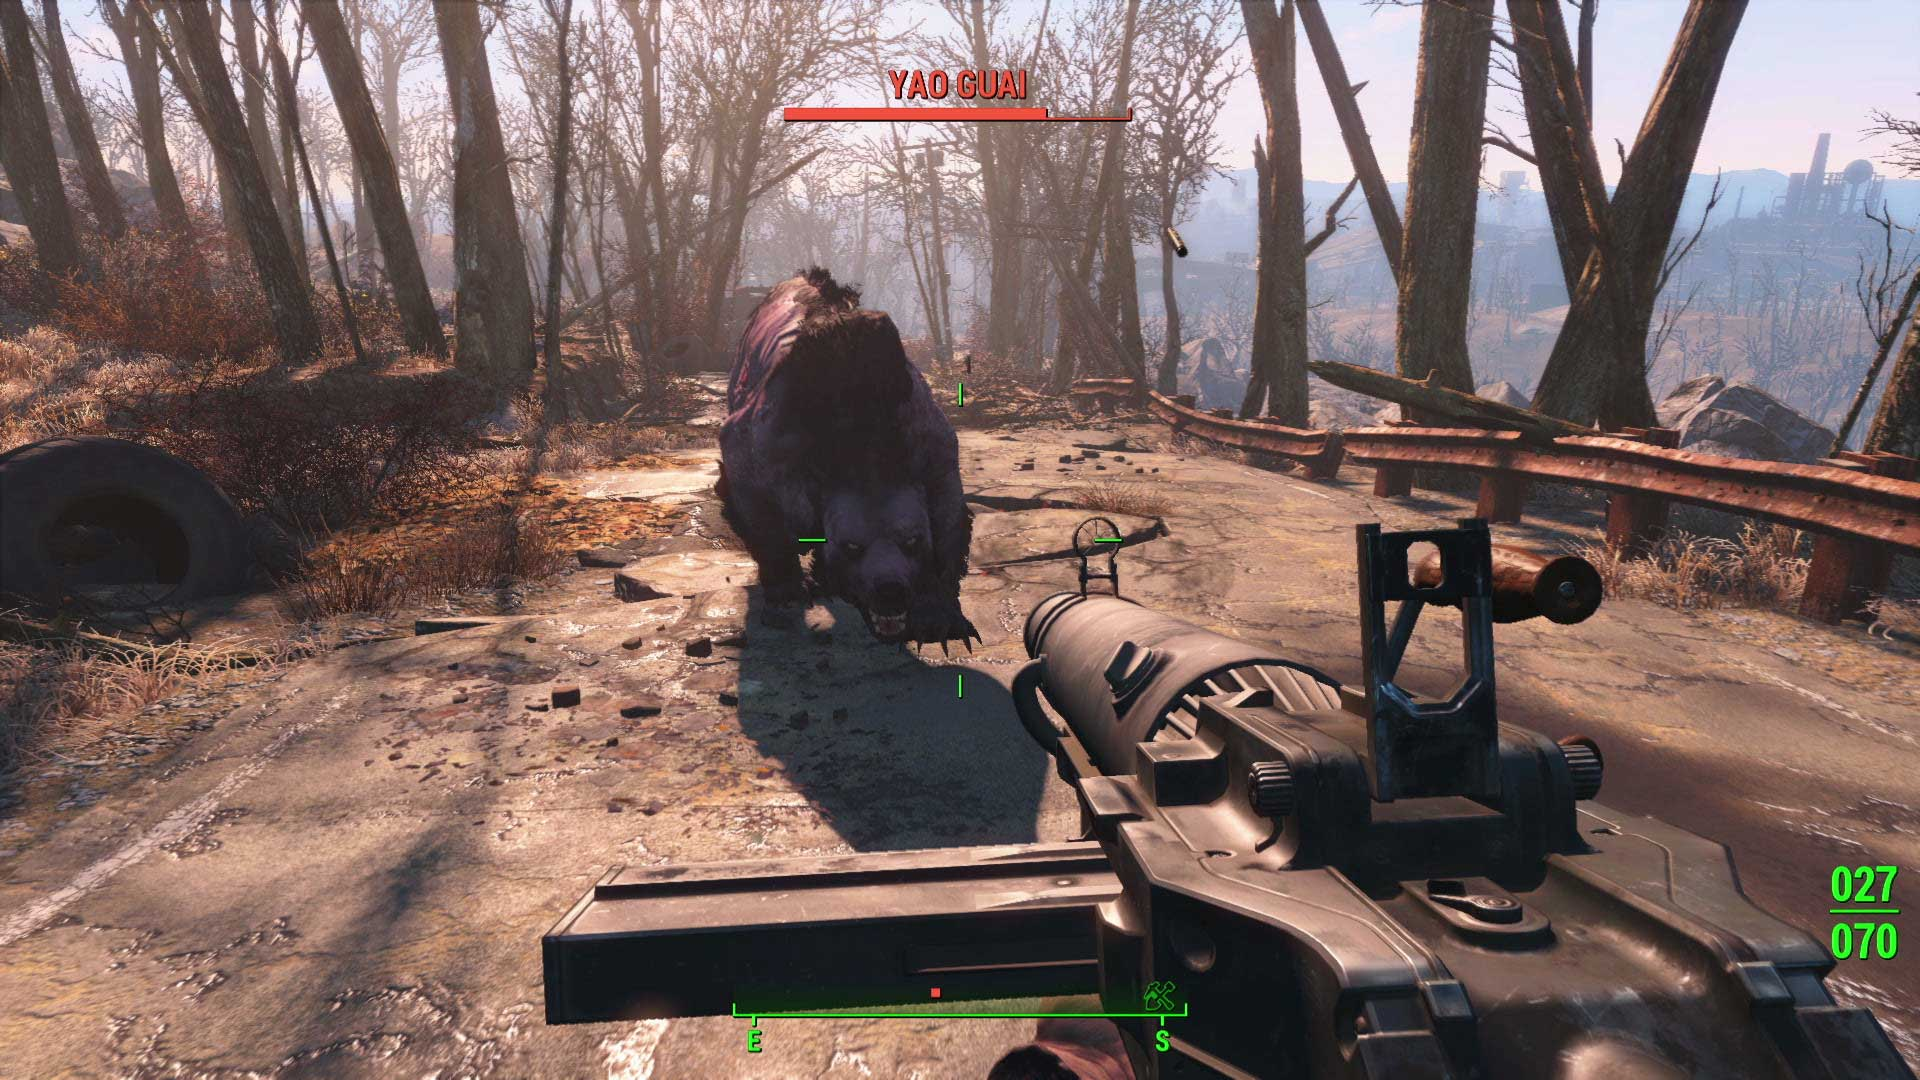 Fallout 4 gets glorious new E3 2015 screenshots and